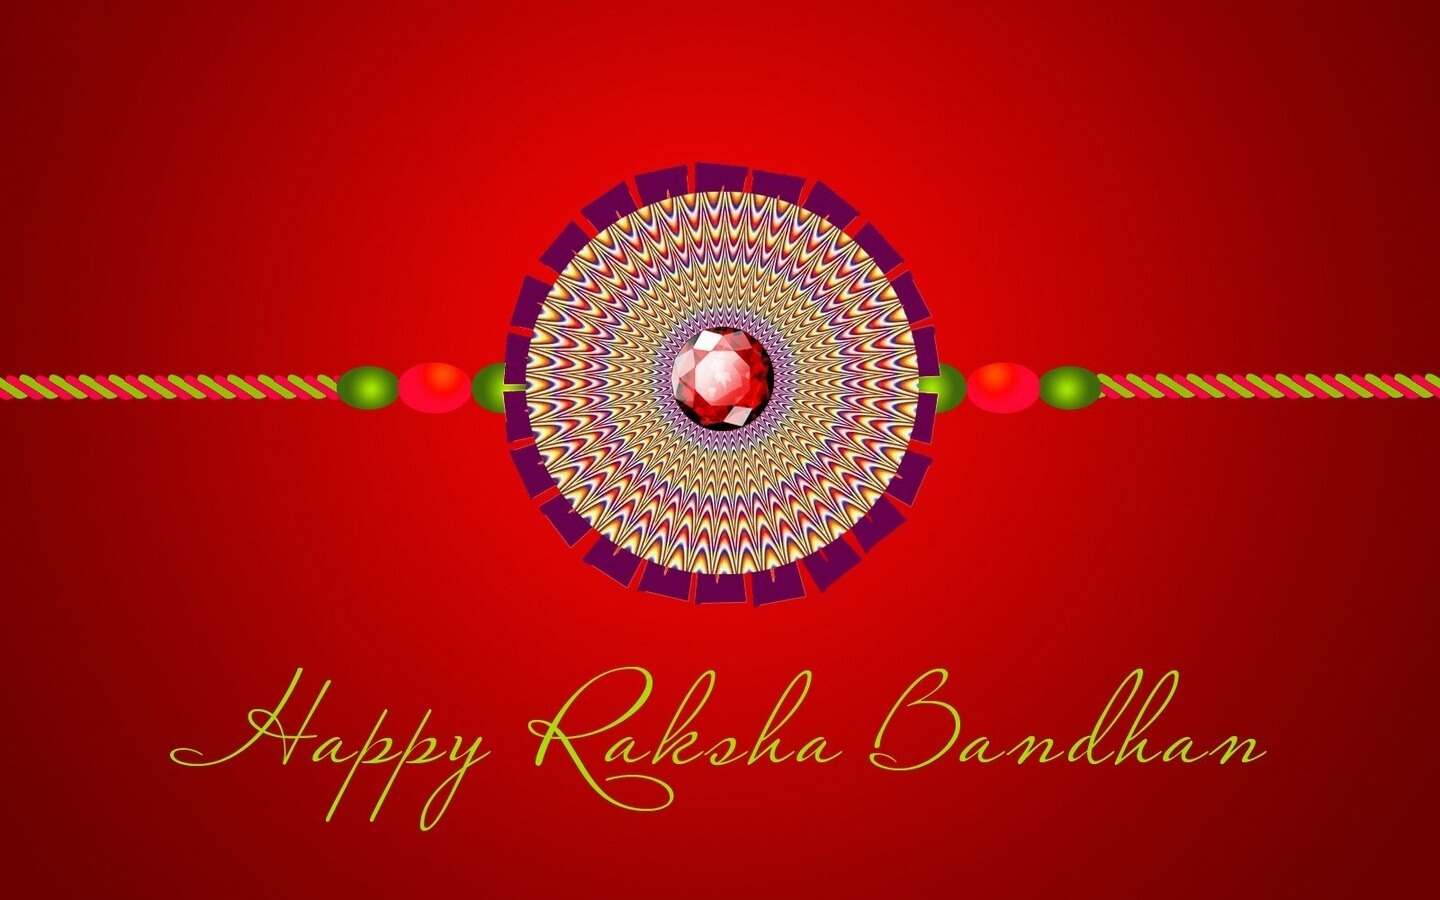 happy raksha bandhan rakhi hd illusion wallpaper